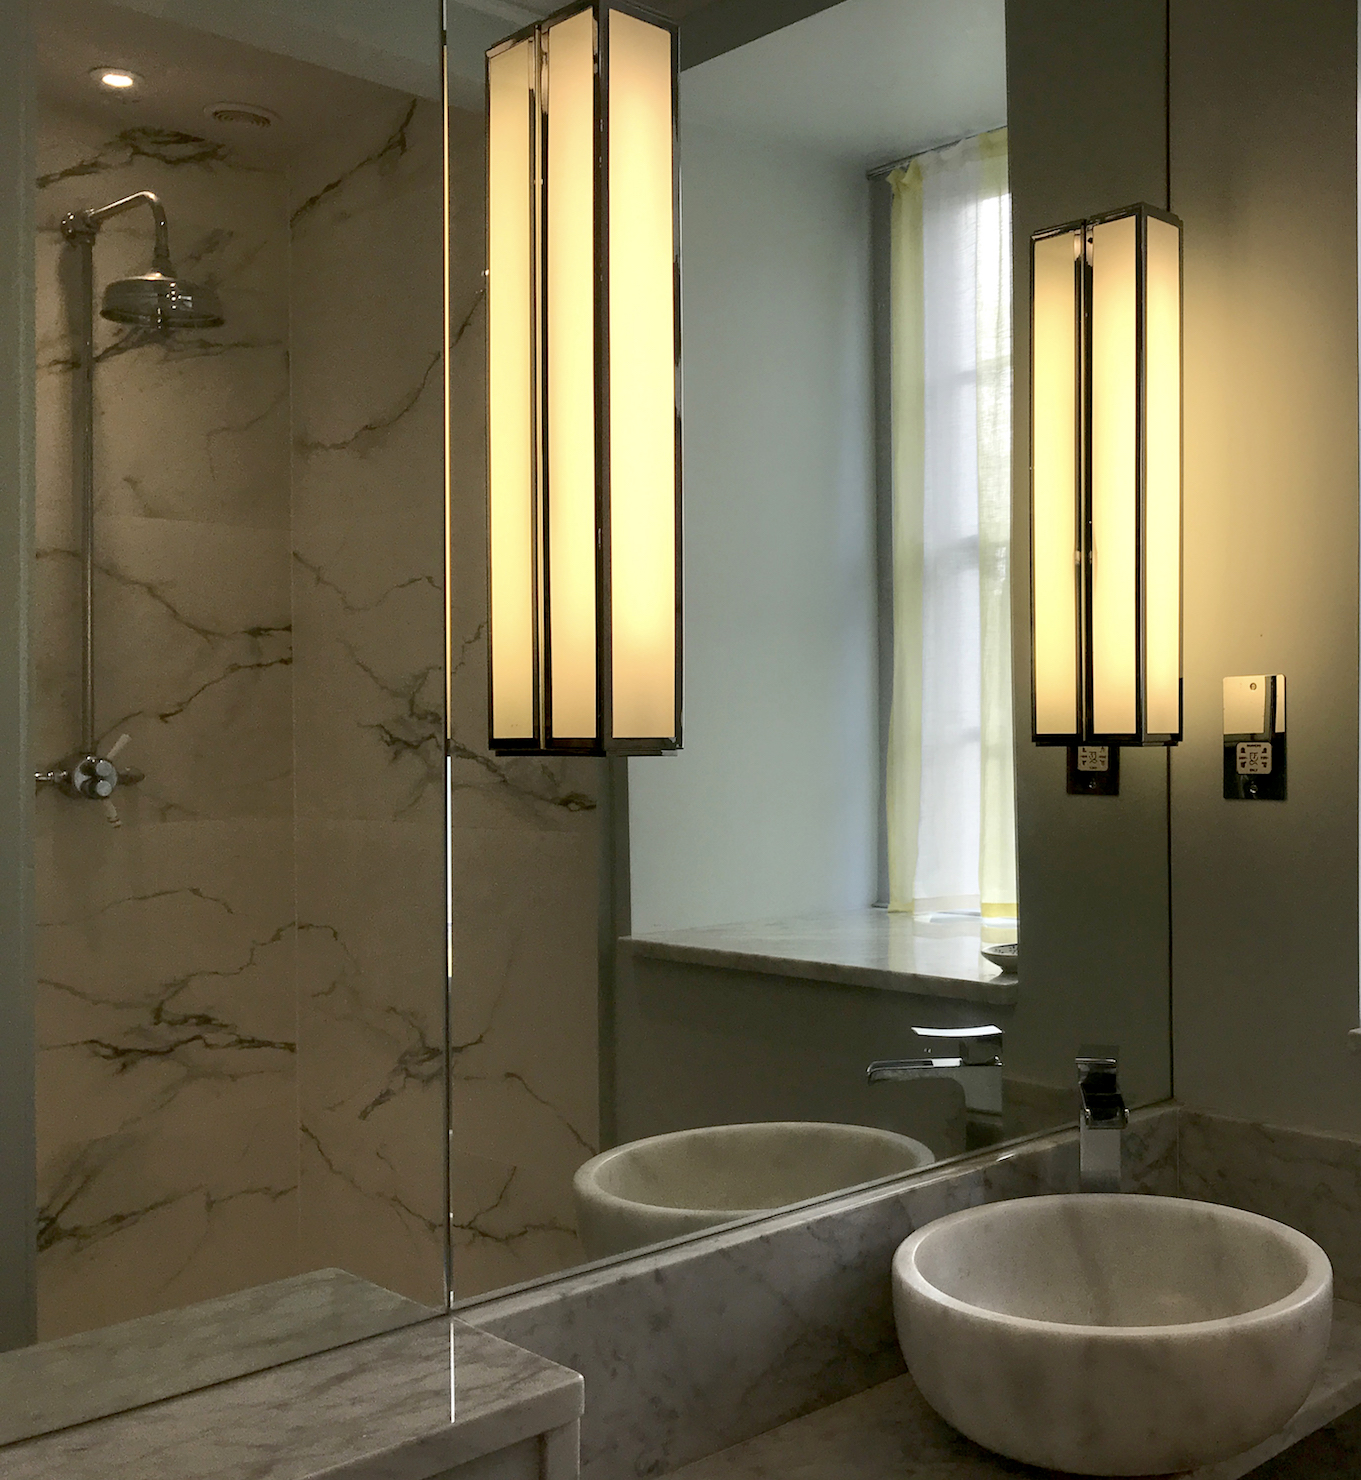 eleanor-bell-resdiential-lighting-bathroom-wall-lights.jpg